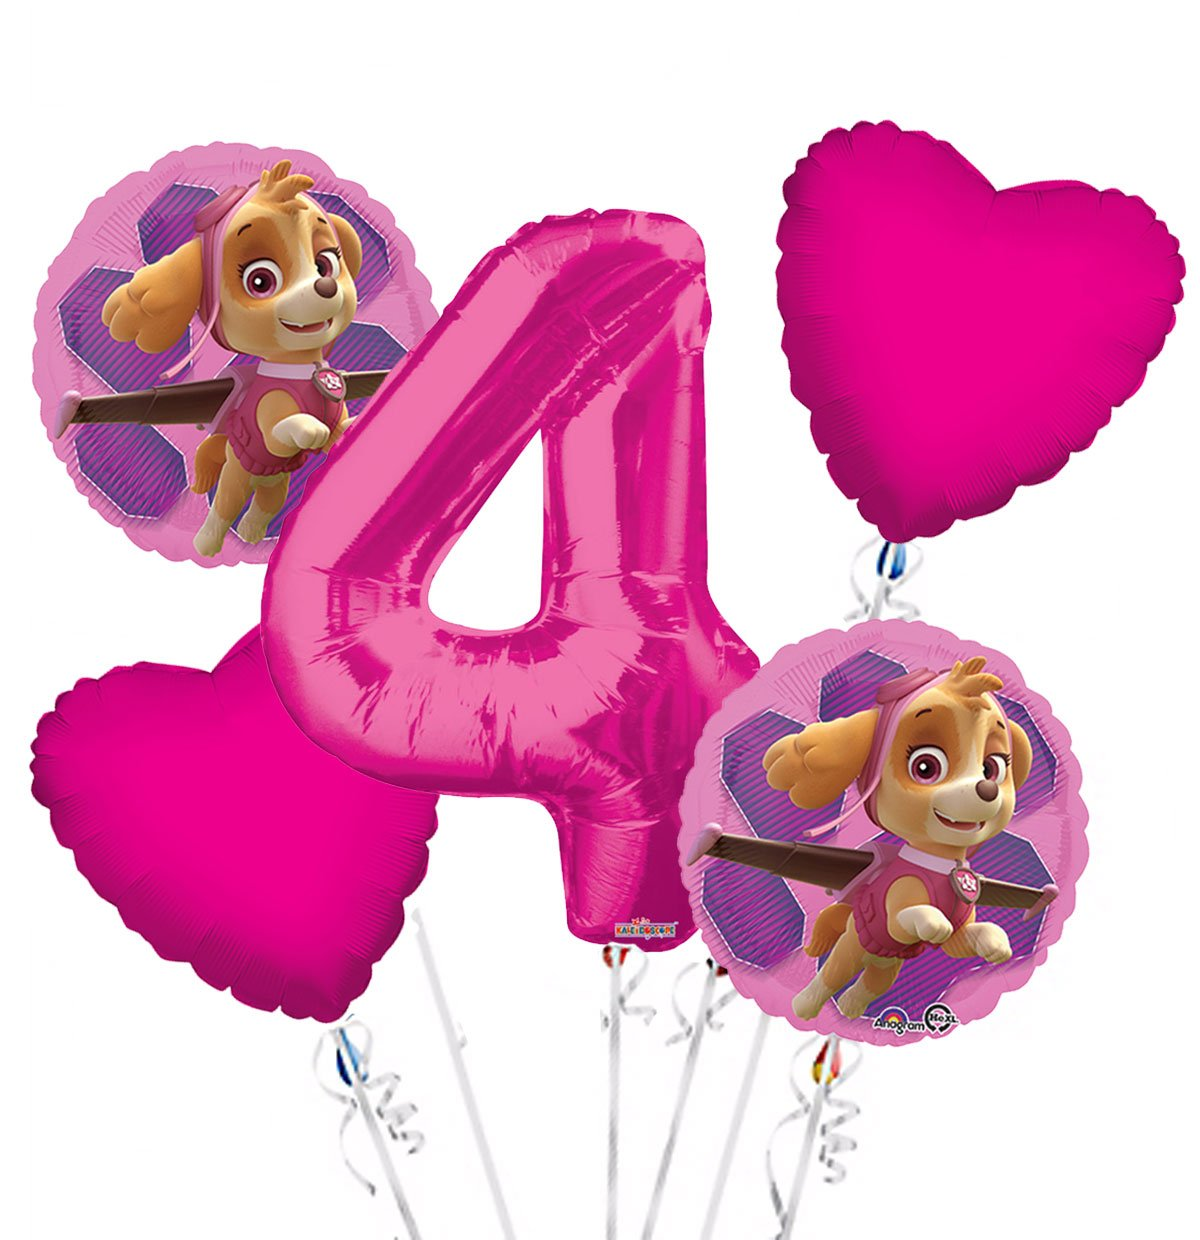 Paw Patrol Girl Balloon Bouquet 4th Birthday 5 pcs - Party Supplies, 1 number #4 34' pink By Viva Party